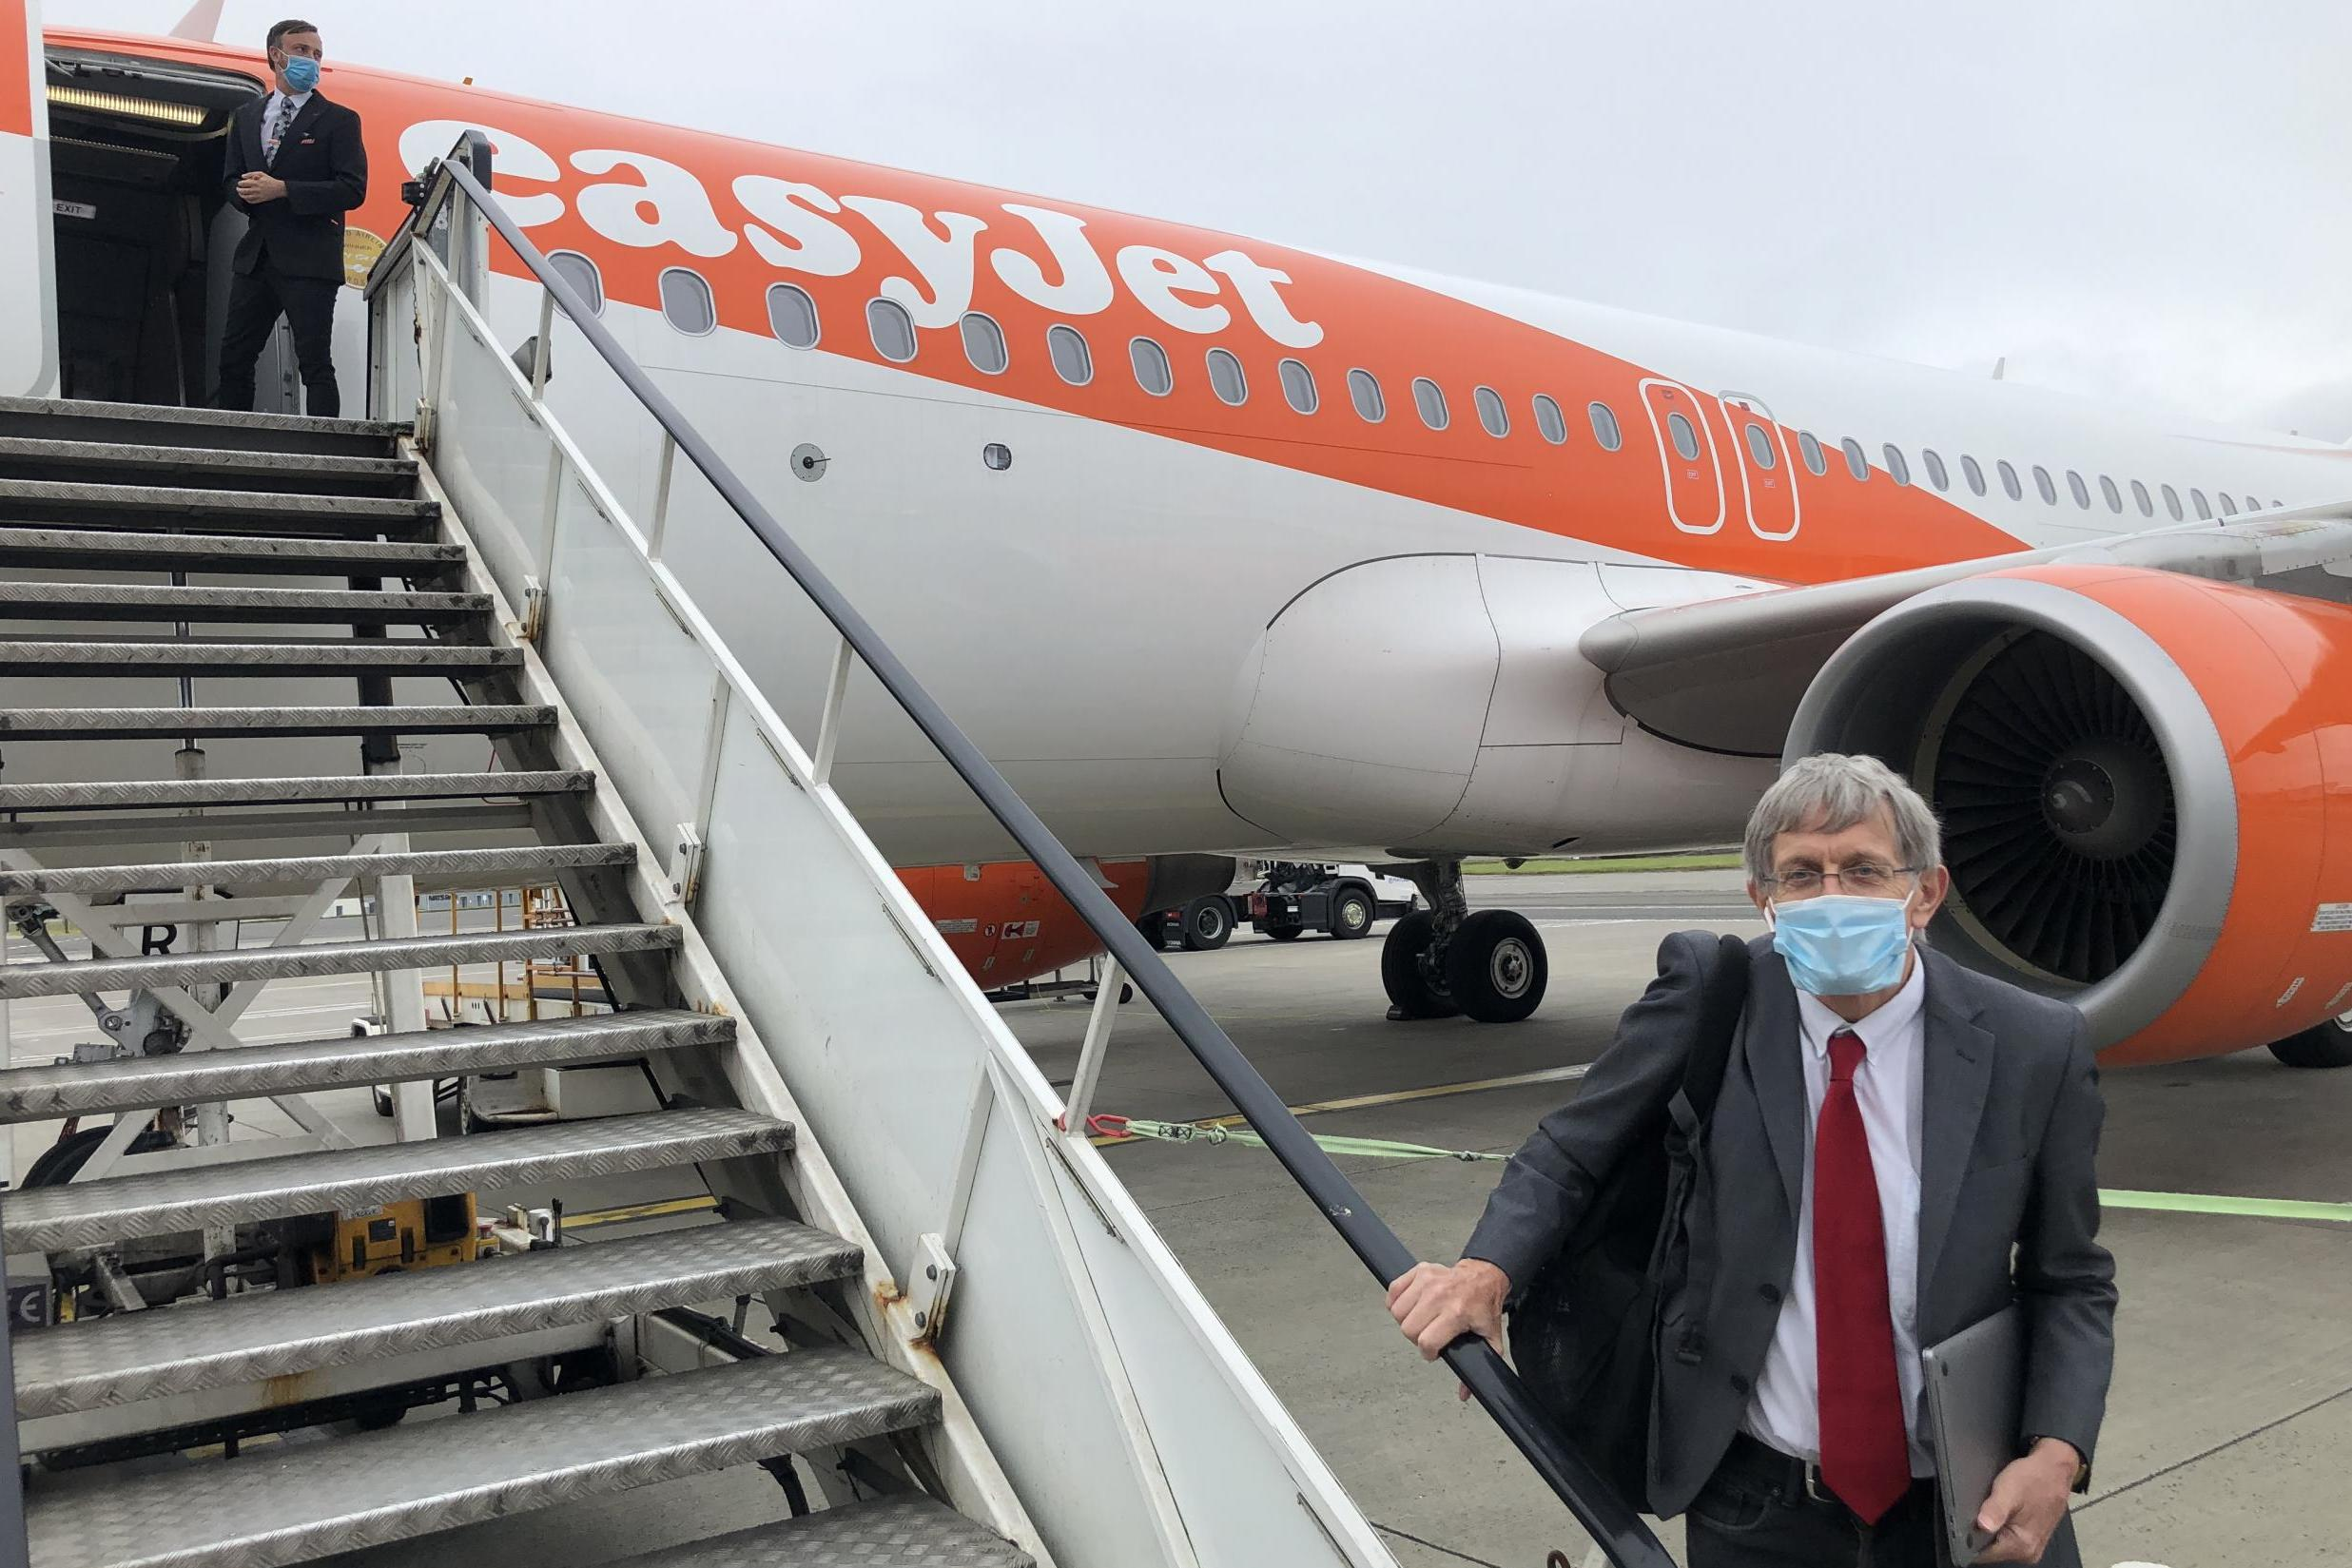 What it's like to take the first easyJet flight after 11 weeks of being grounded